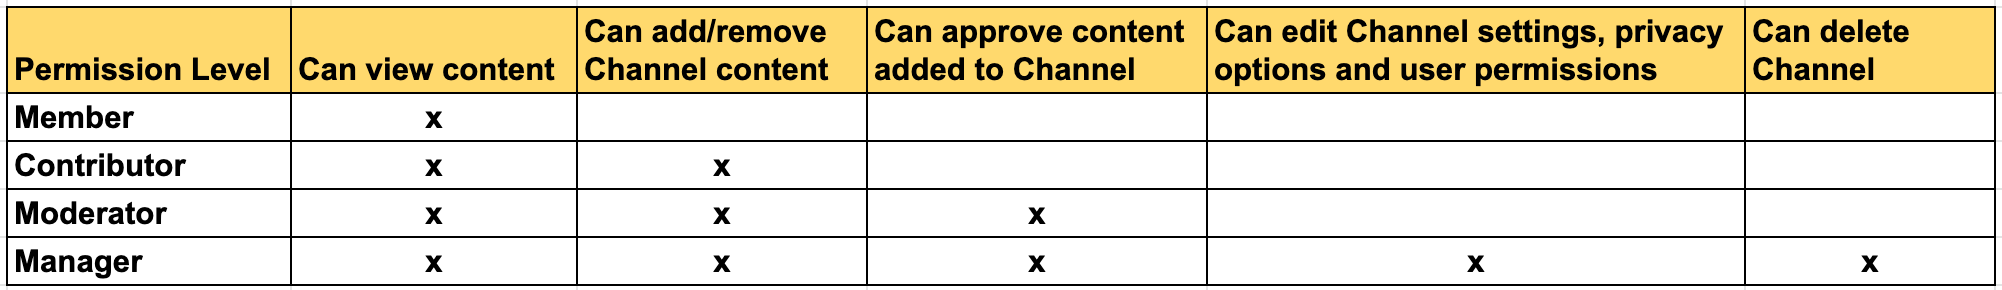 Definitions of a user's permissions. Members can view content only. Contributors can add/remove content. Moderators can approve content. Managers can edit and delete channel.